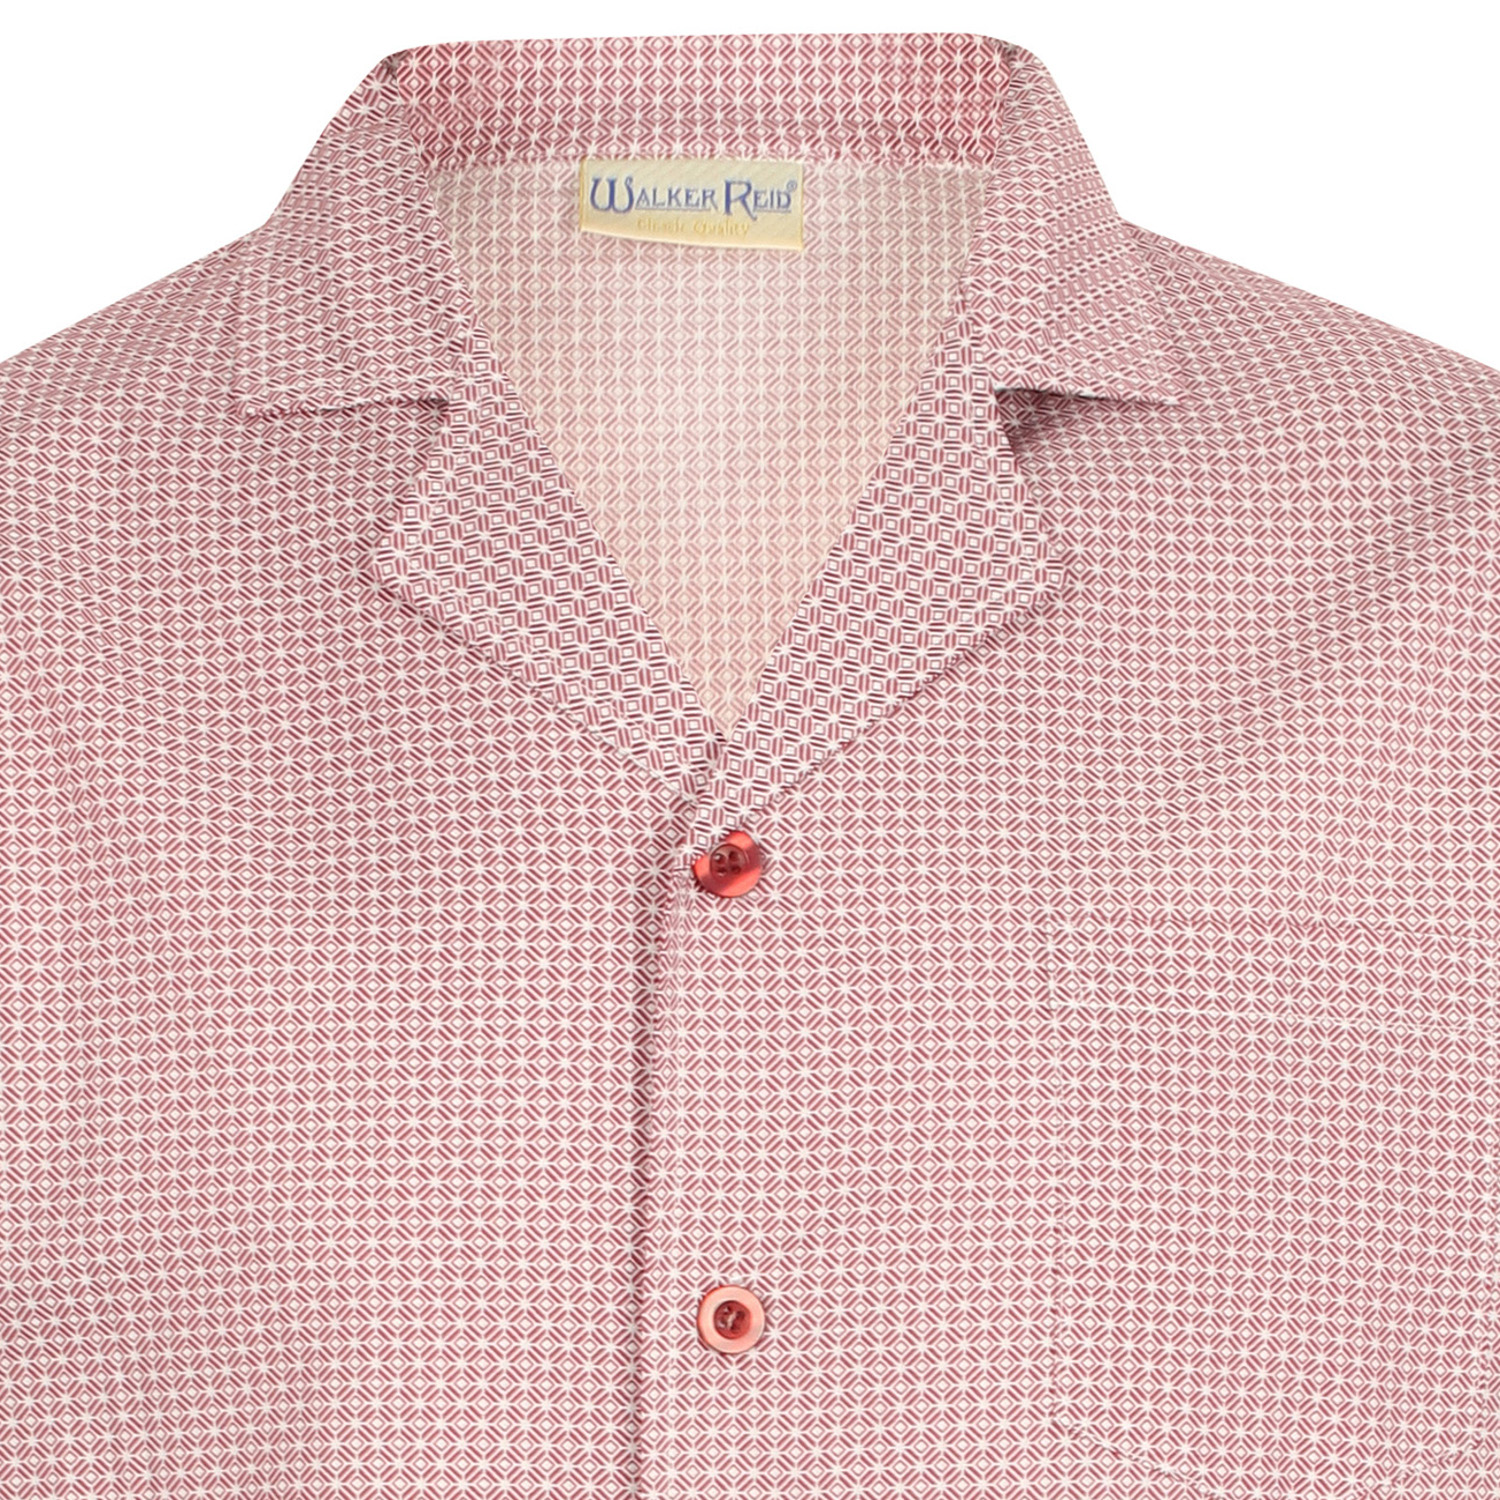 87af001c45 These traditional nightshirts from Walker Reid have a geo print pattern  throughout